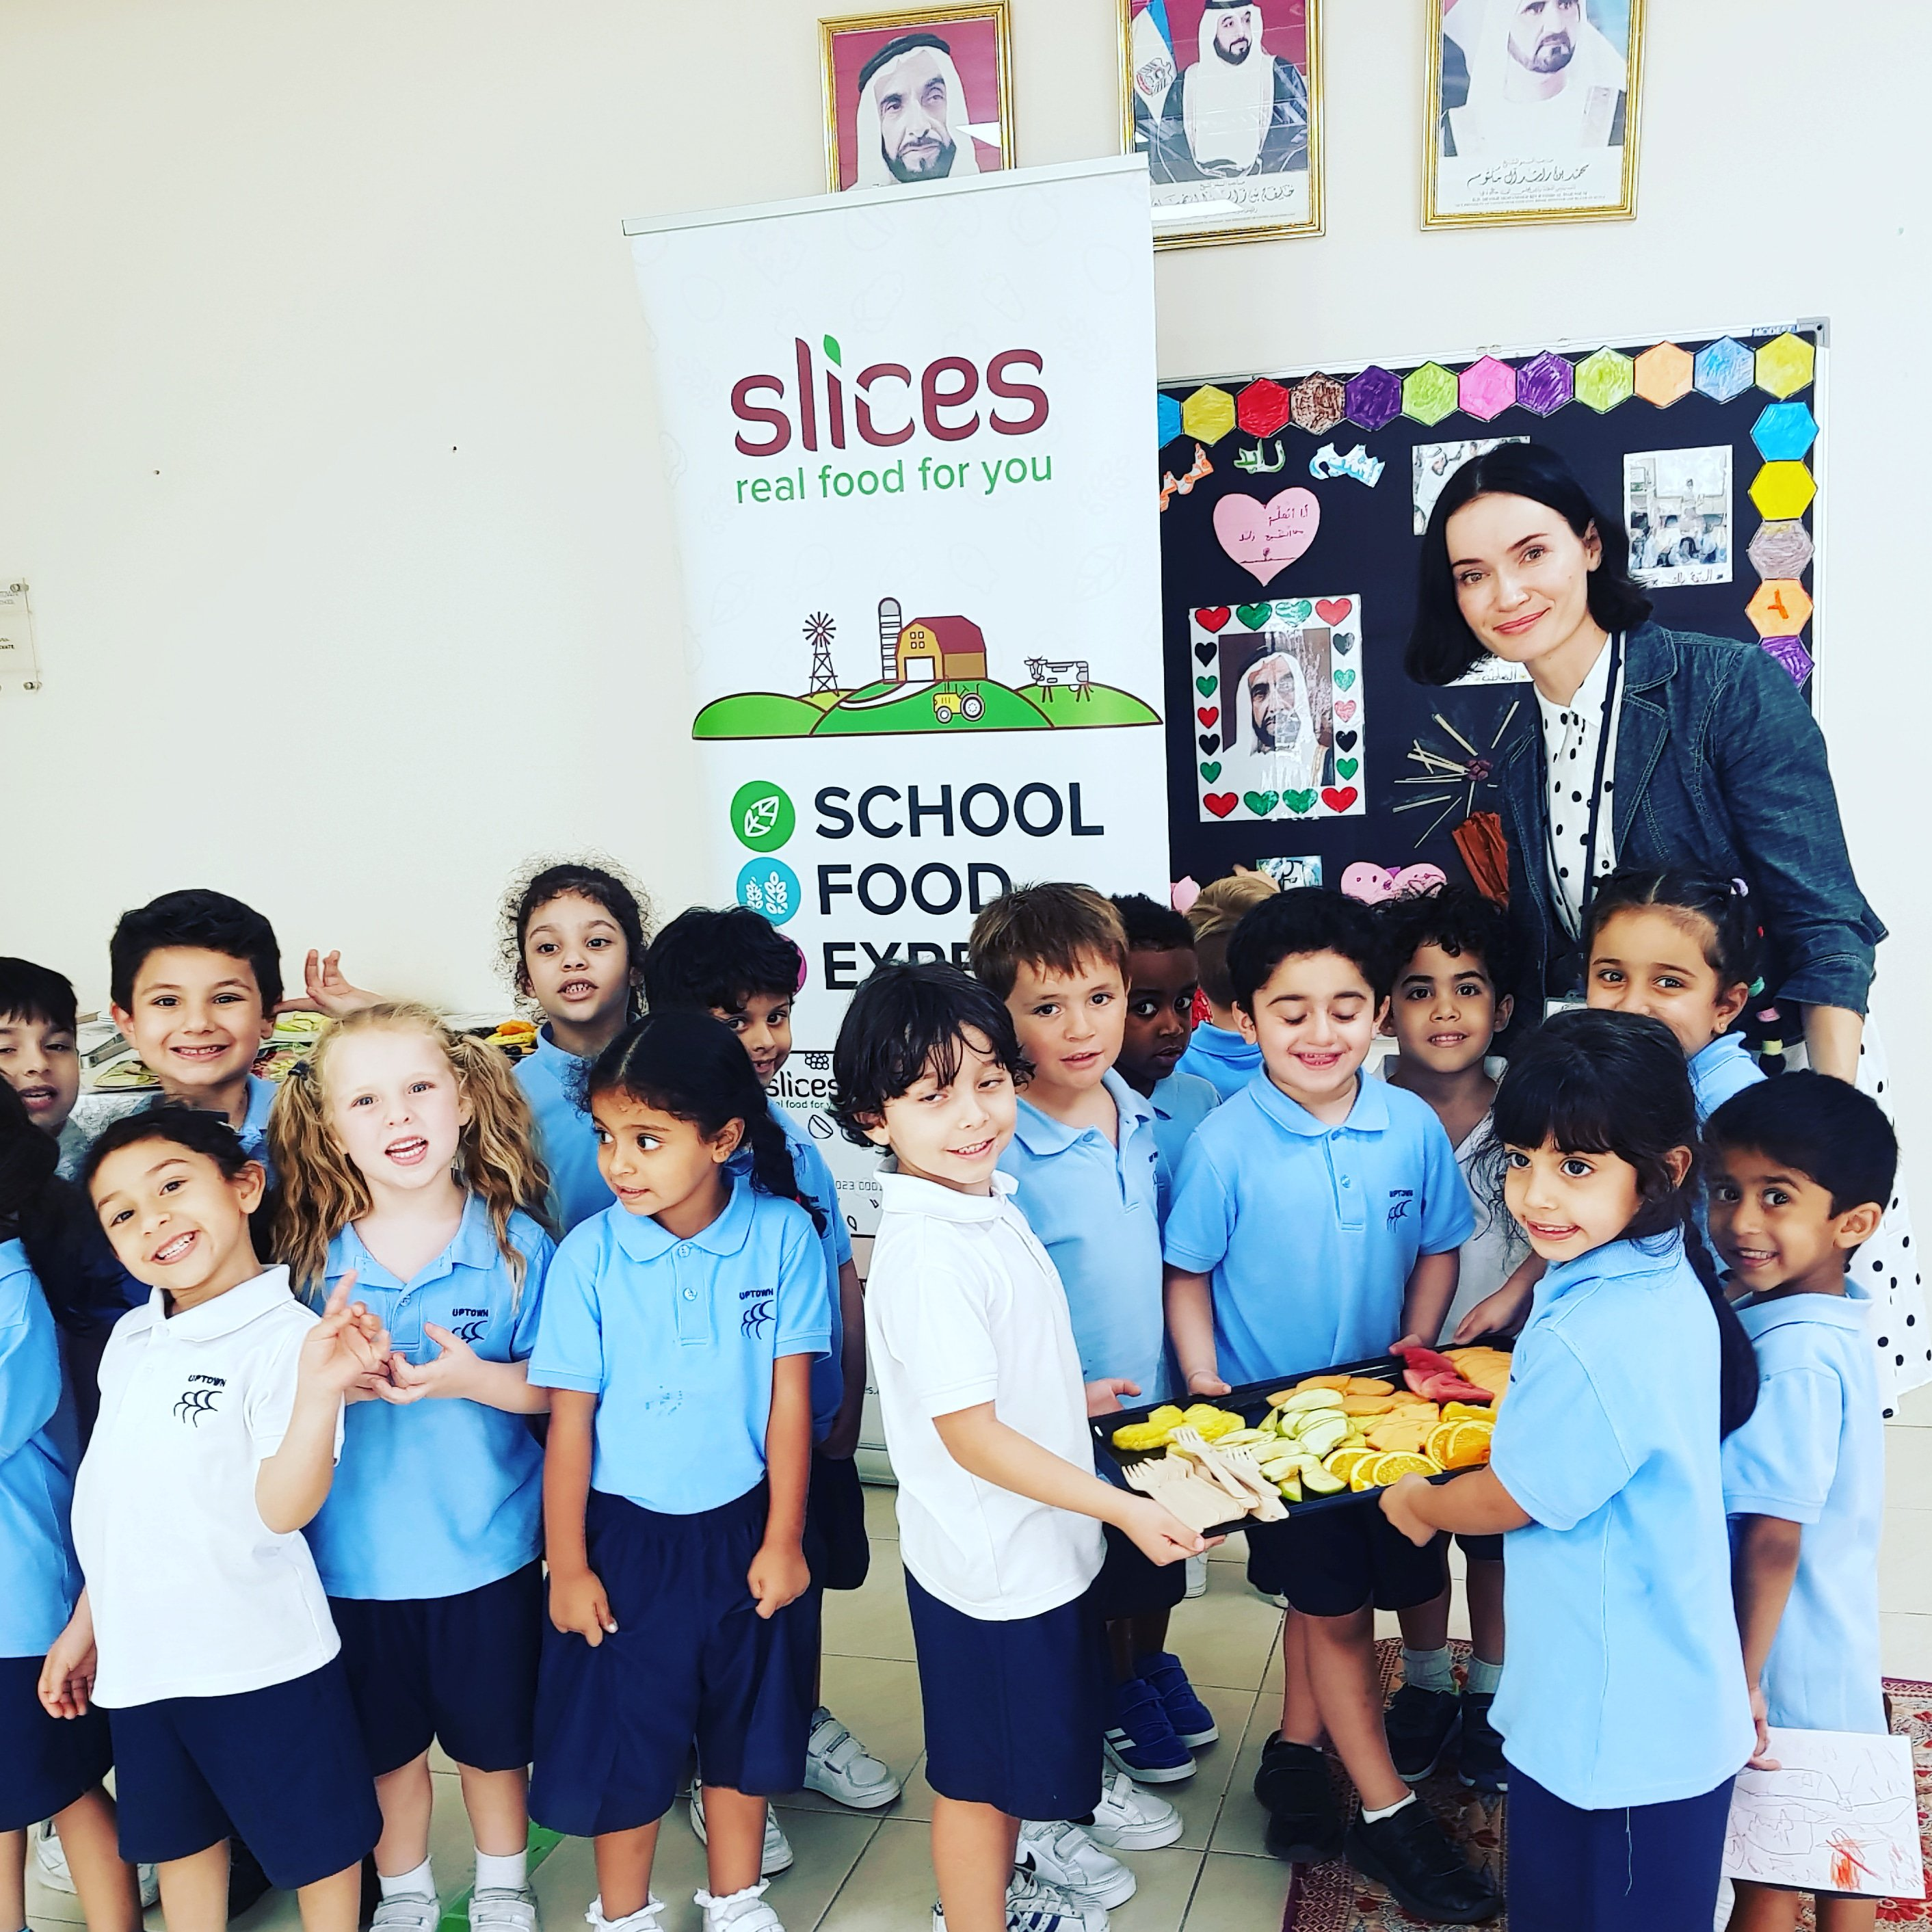 Slices works with vendors to feed 10,000 UAE students a day healthy food. Photo courtesy: Twitter/@SlicesAE